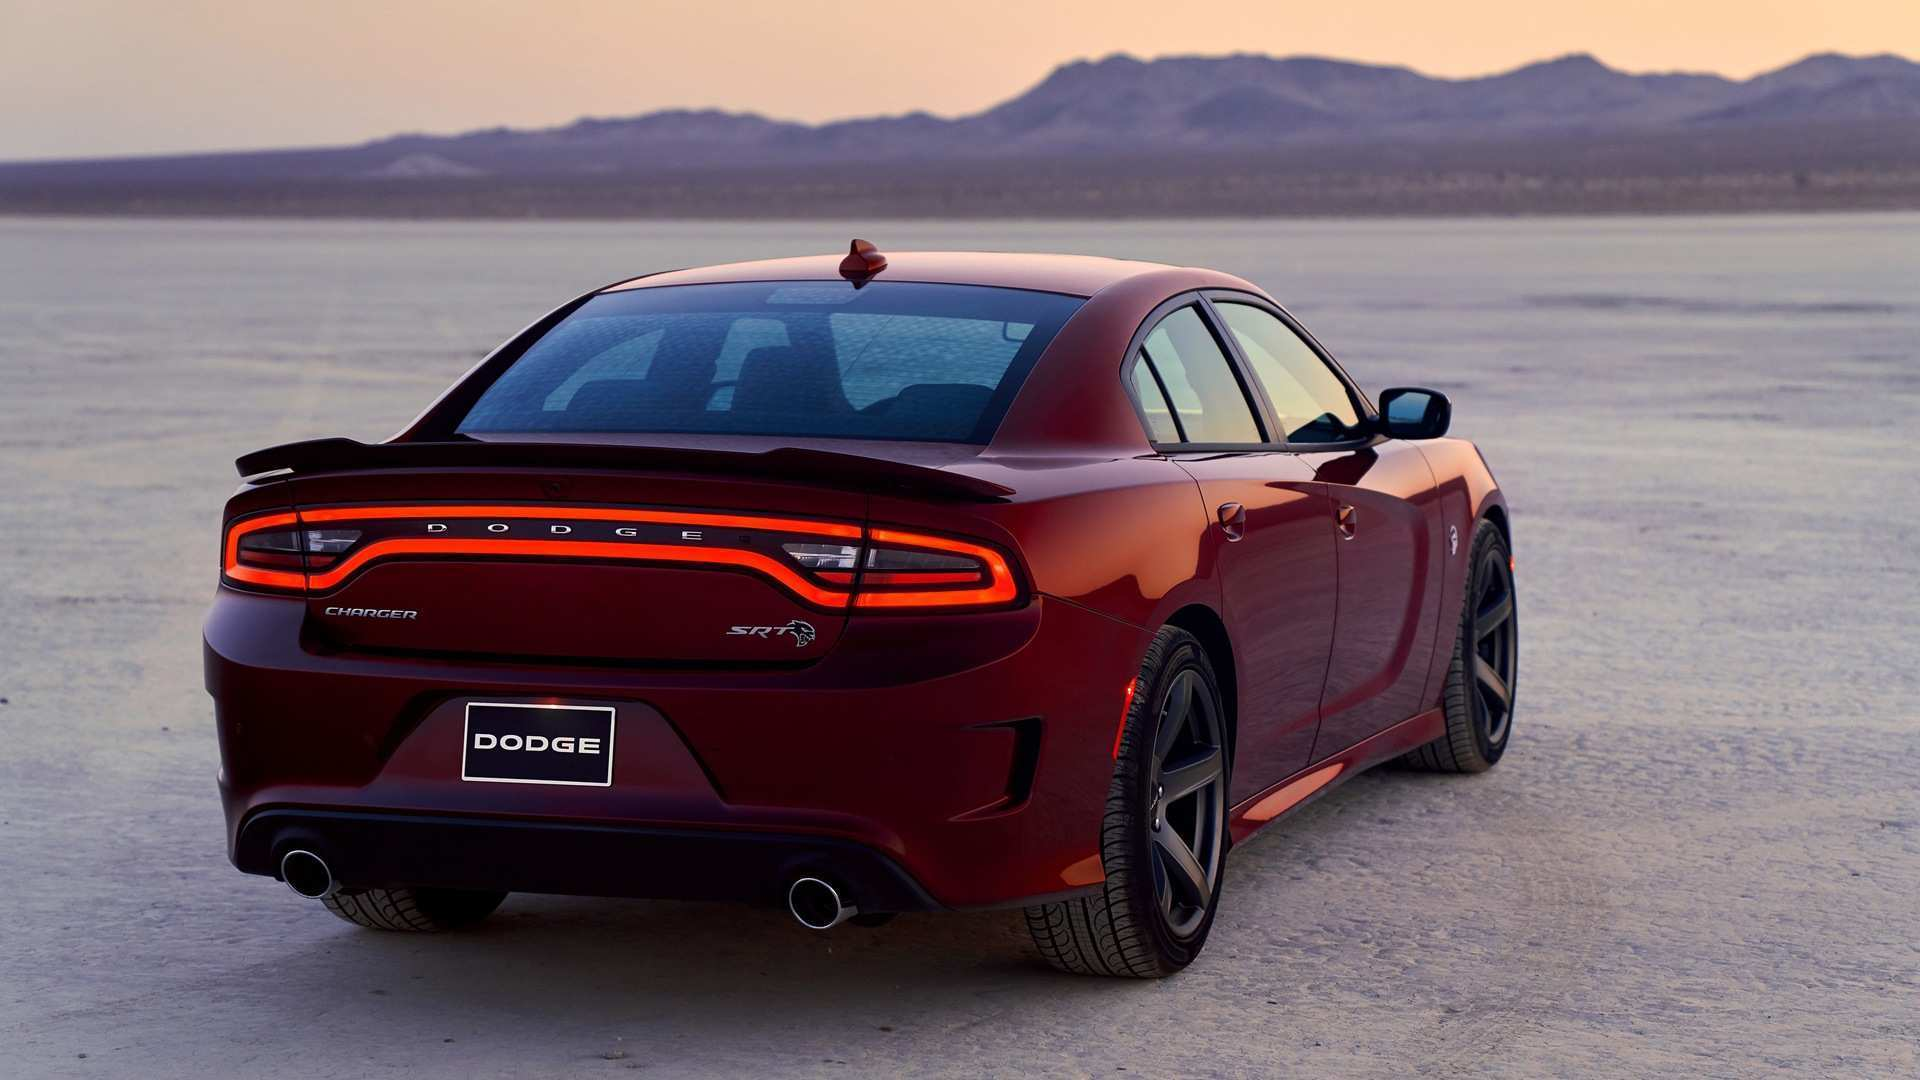 77 The Best 2019 Dodge Charger SRT8 Release Date And Concept